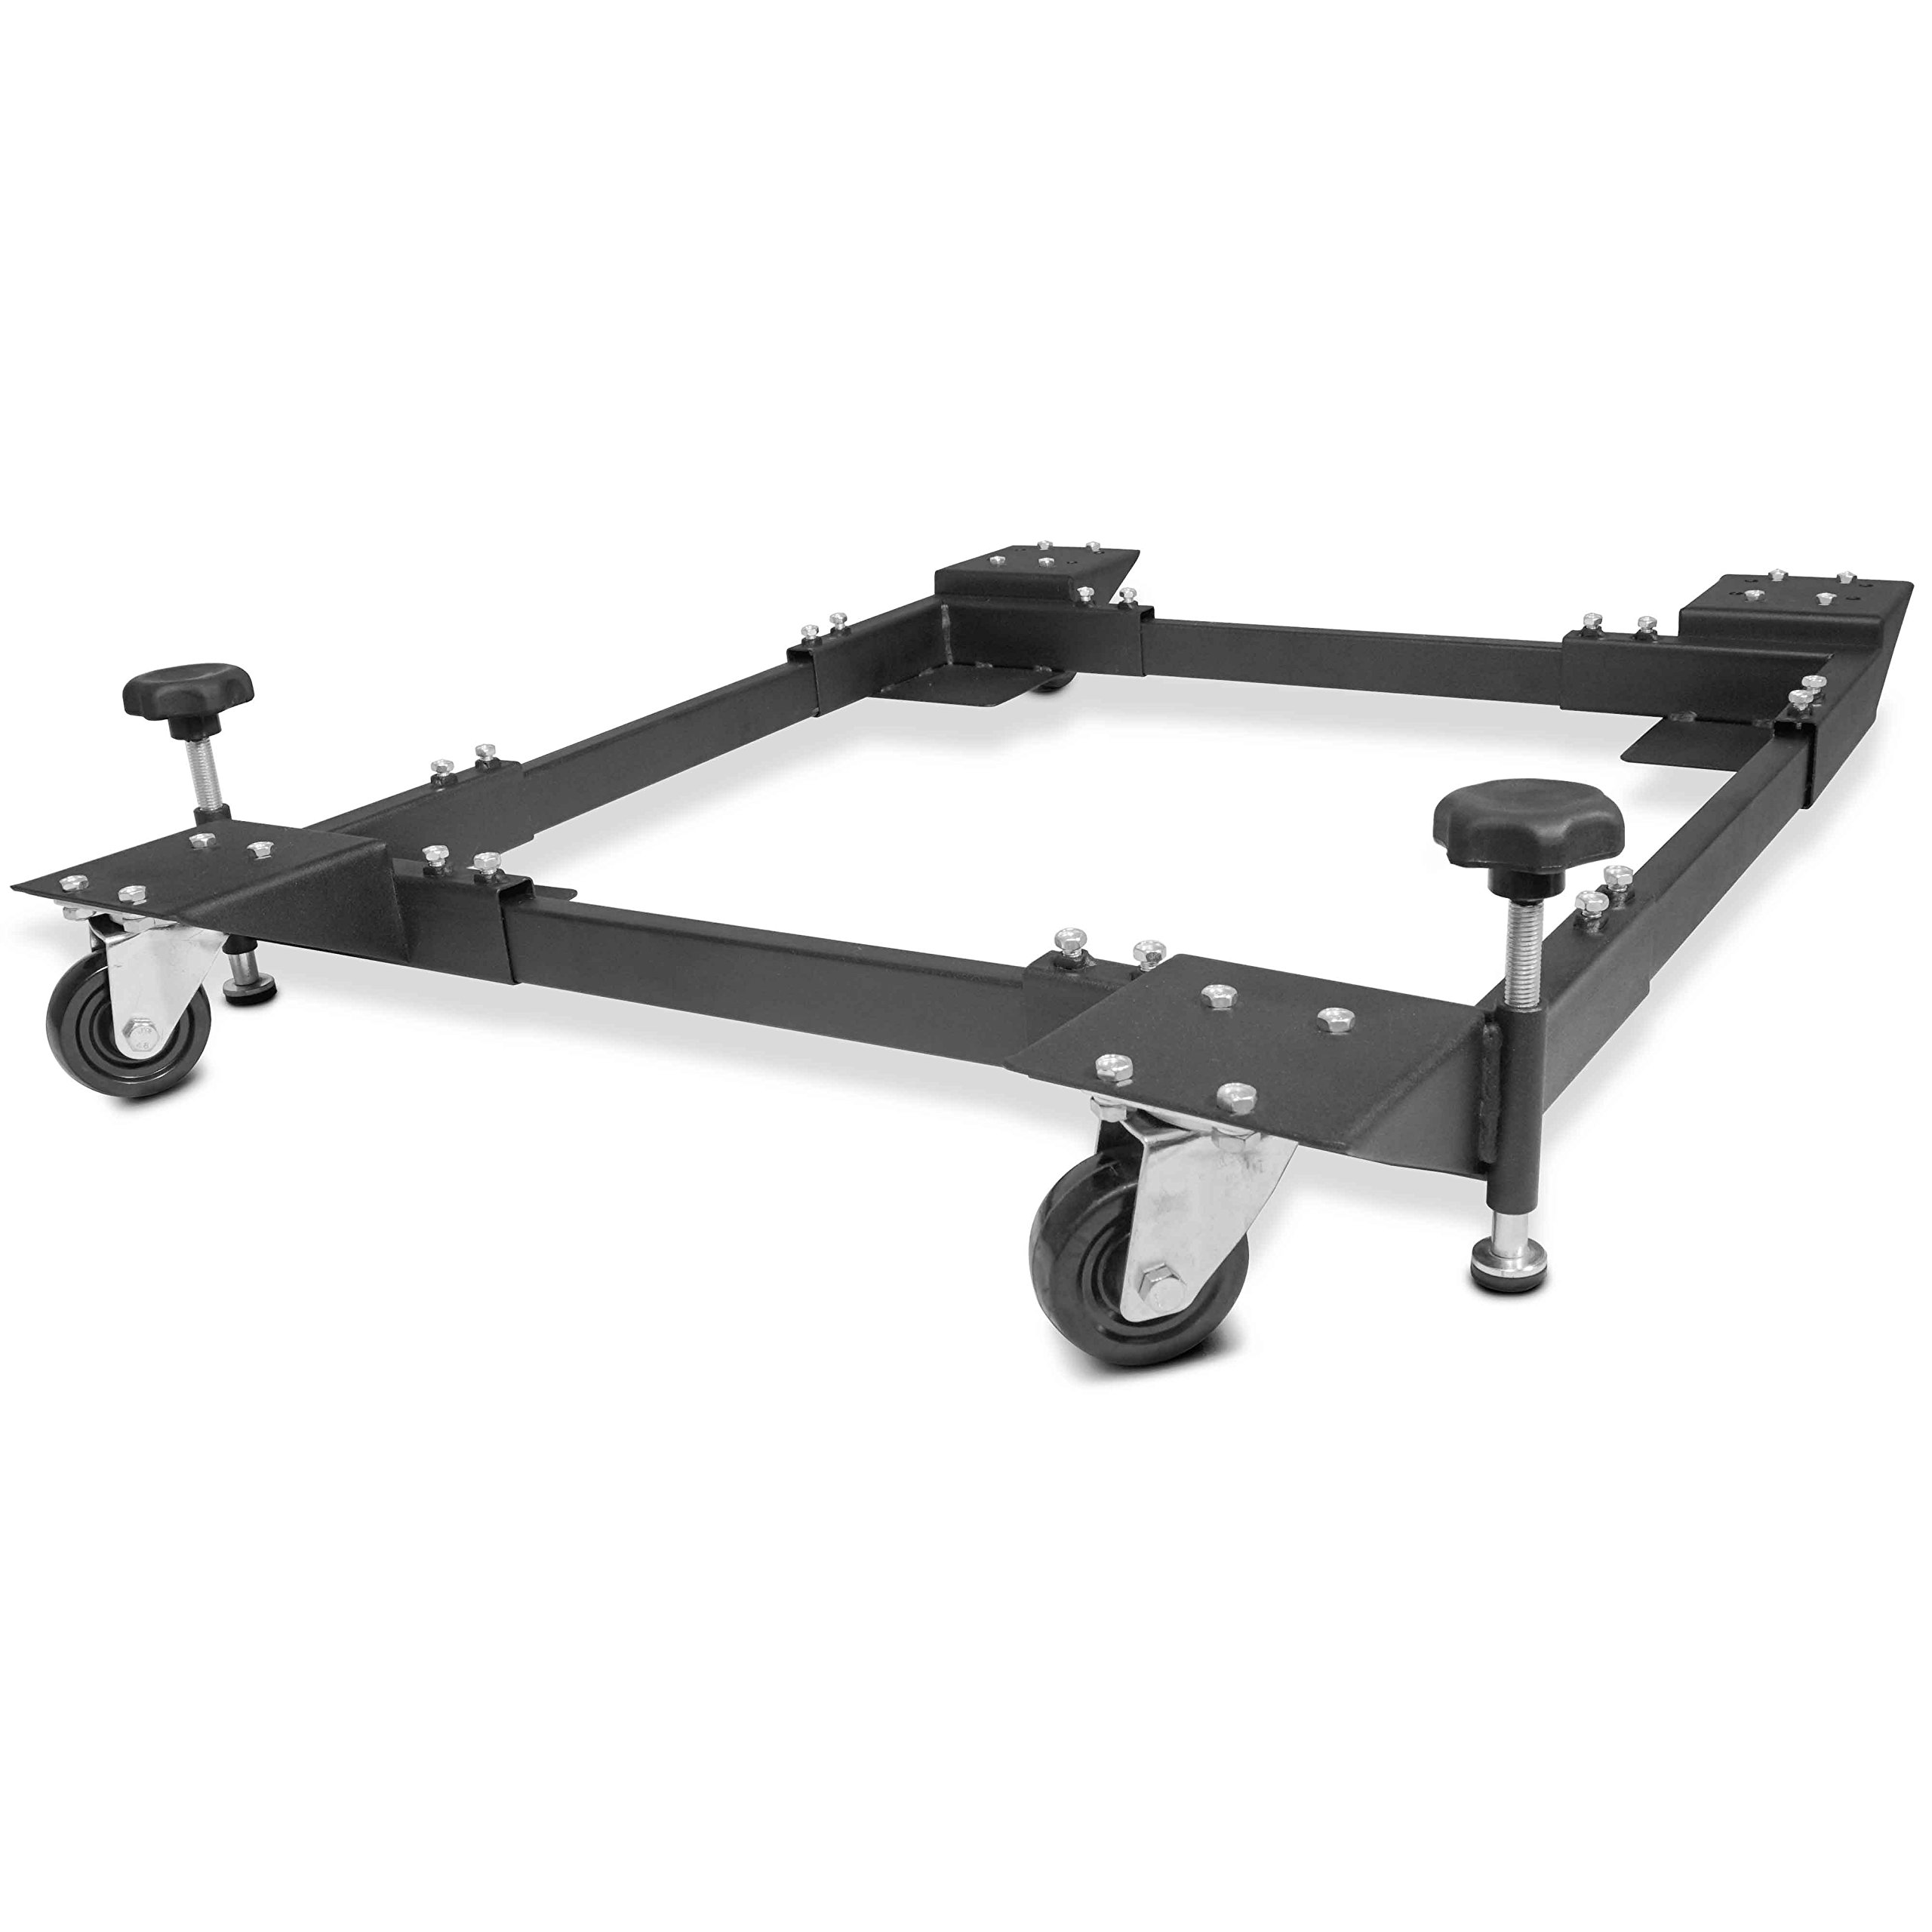 Titan Adjustable Mobile Base Dolly 600 lb Capacity HD Universal Power Tools - Make Your Workshop Portable & Easy To Use by Titan Attachments (Image #2)